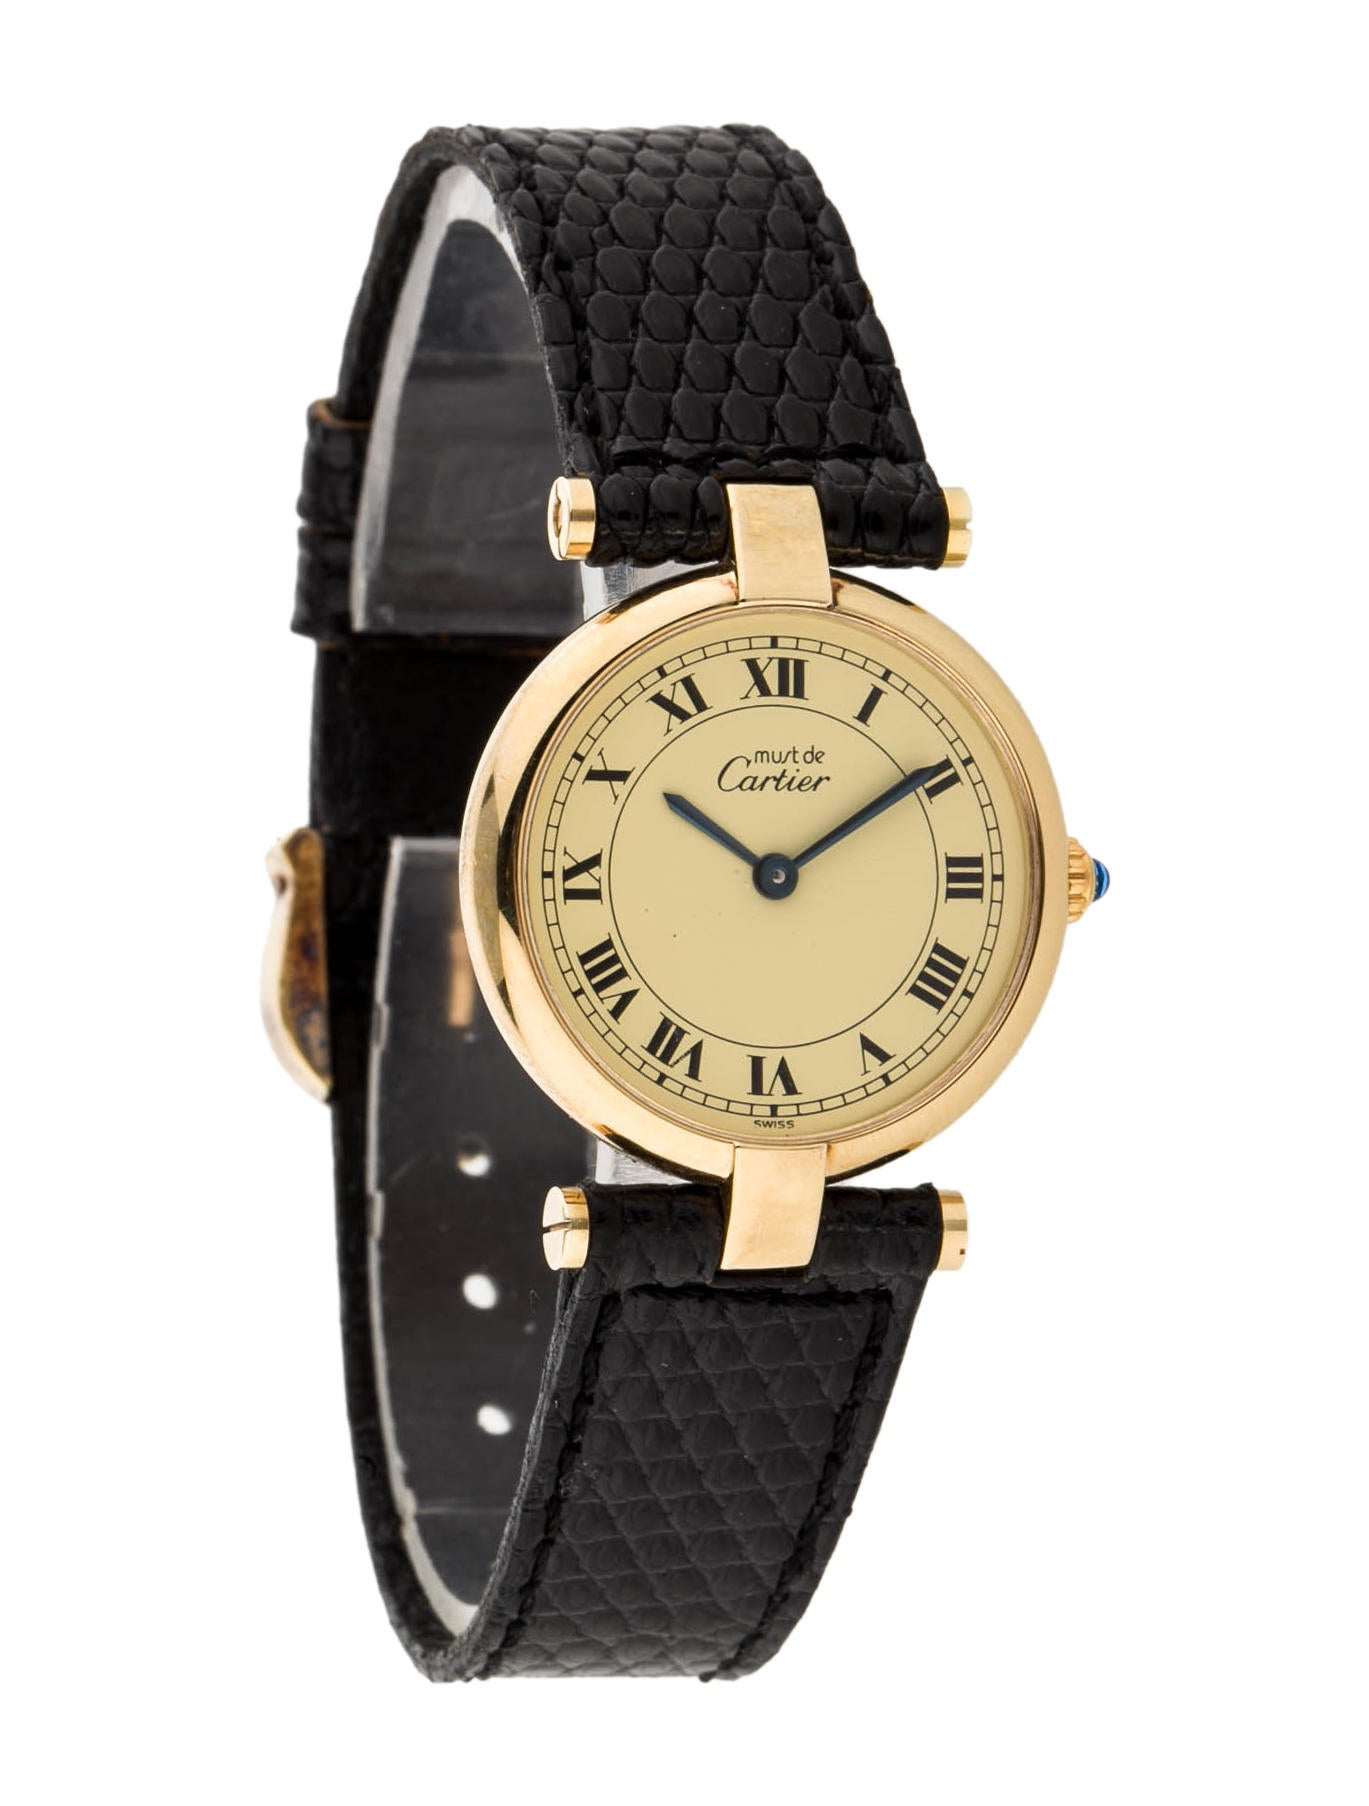 cartier le must de cartier watch strap crt21212 the realreal. Black Bedroom Furniture Sets. Home Design Ideas